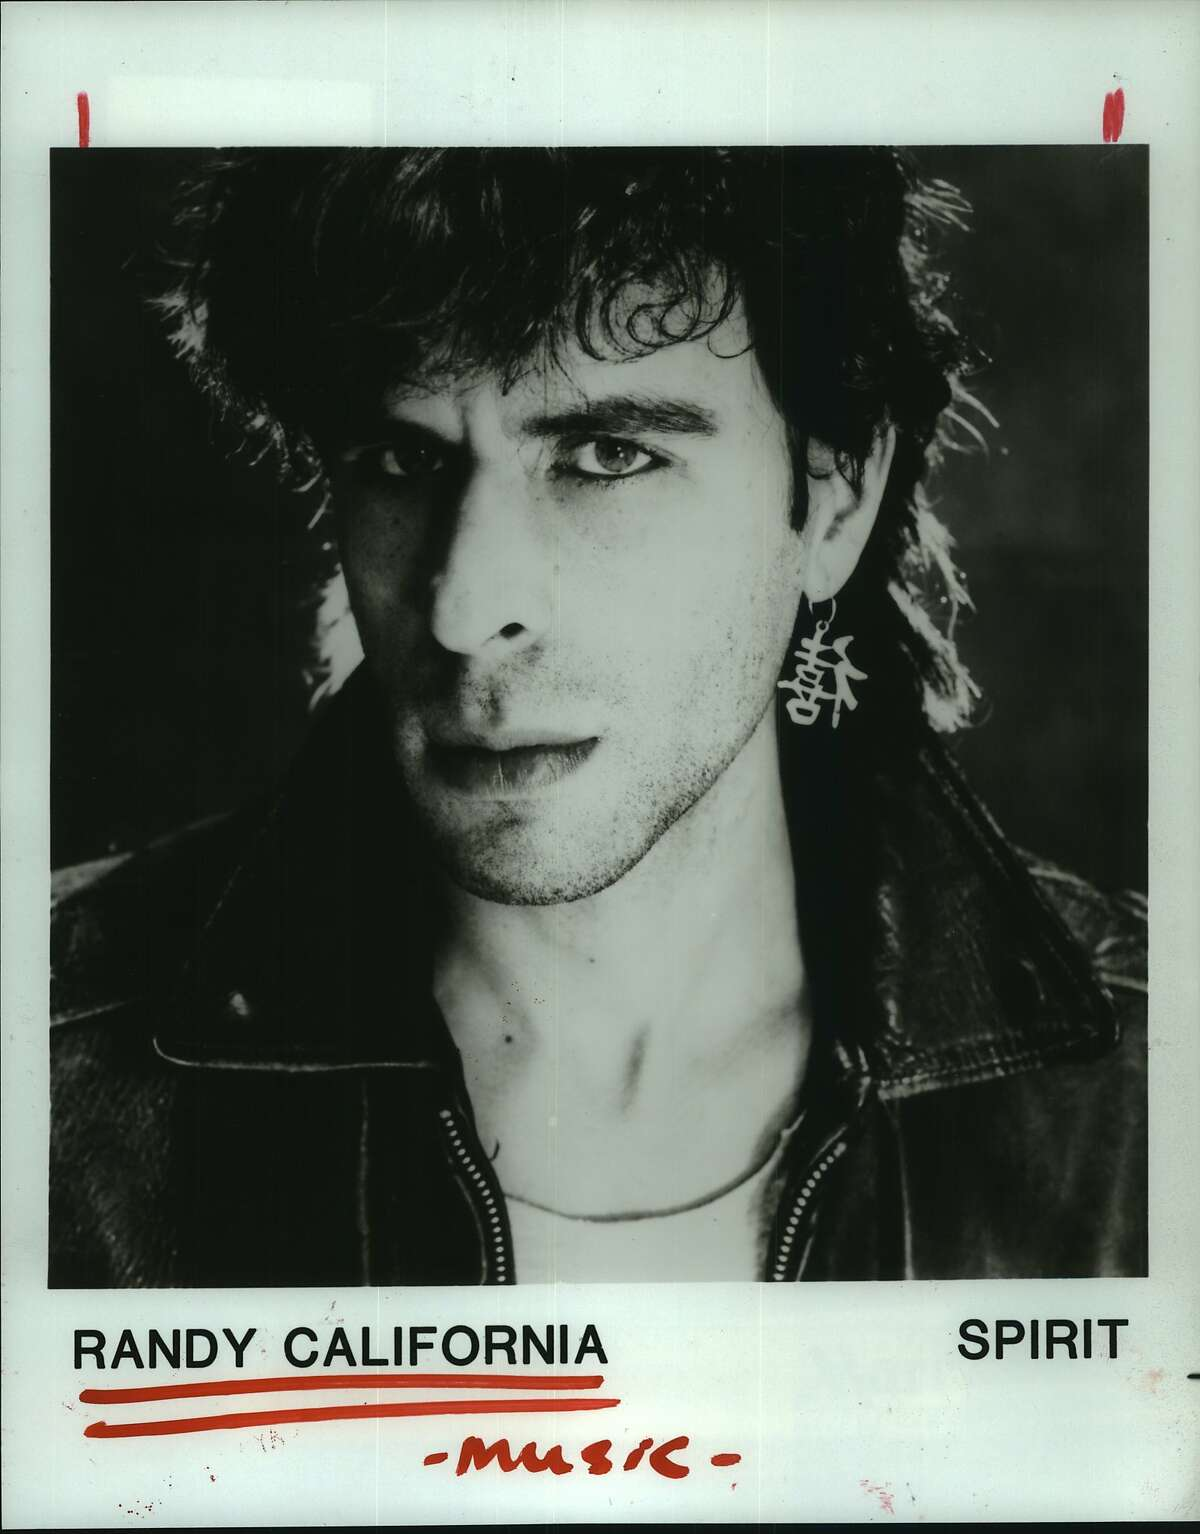 Randy California will be performing with Spirit tonight at Cardi's. Music.